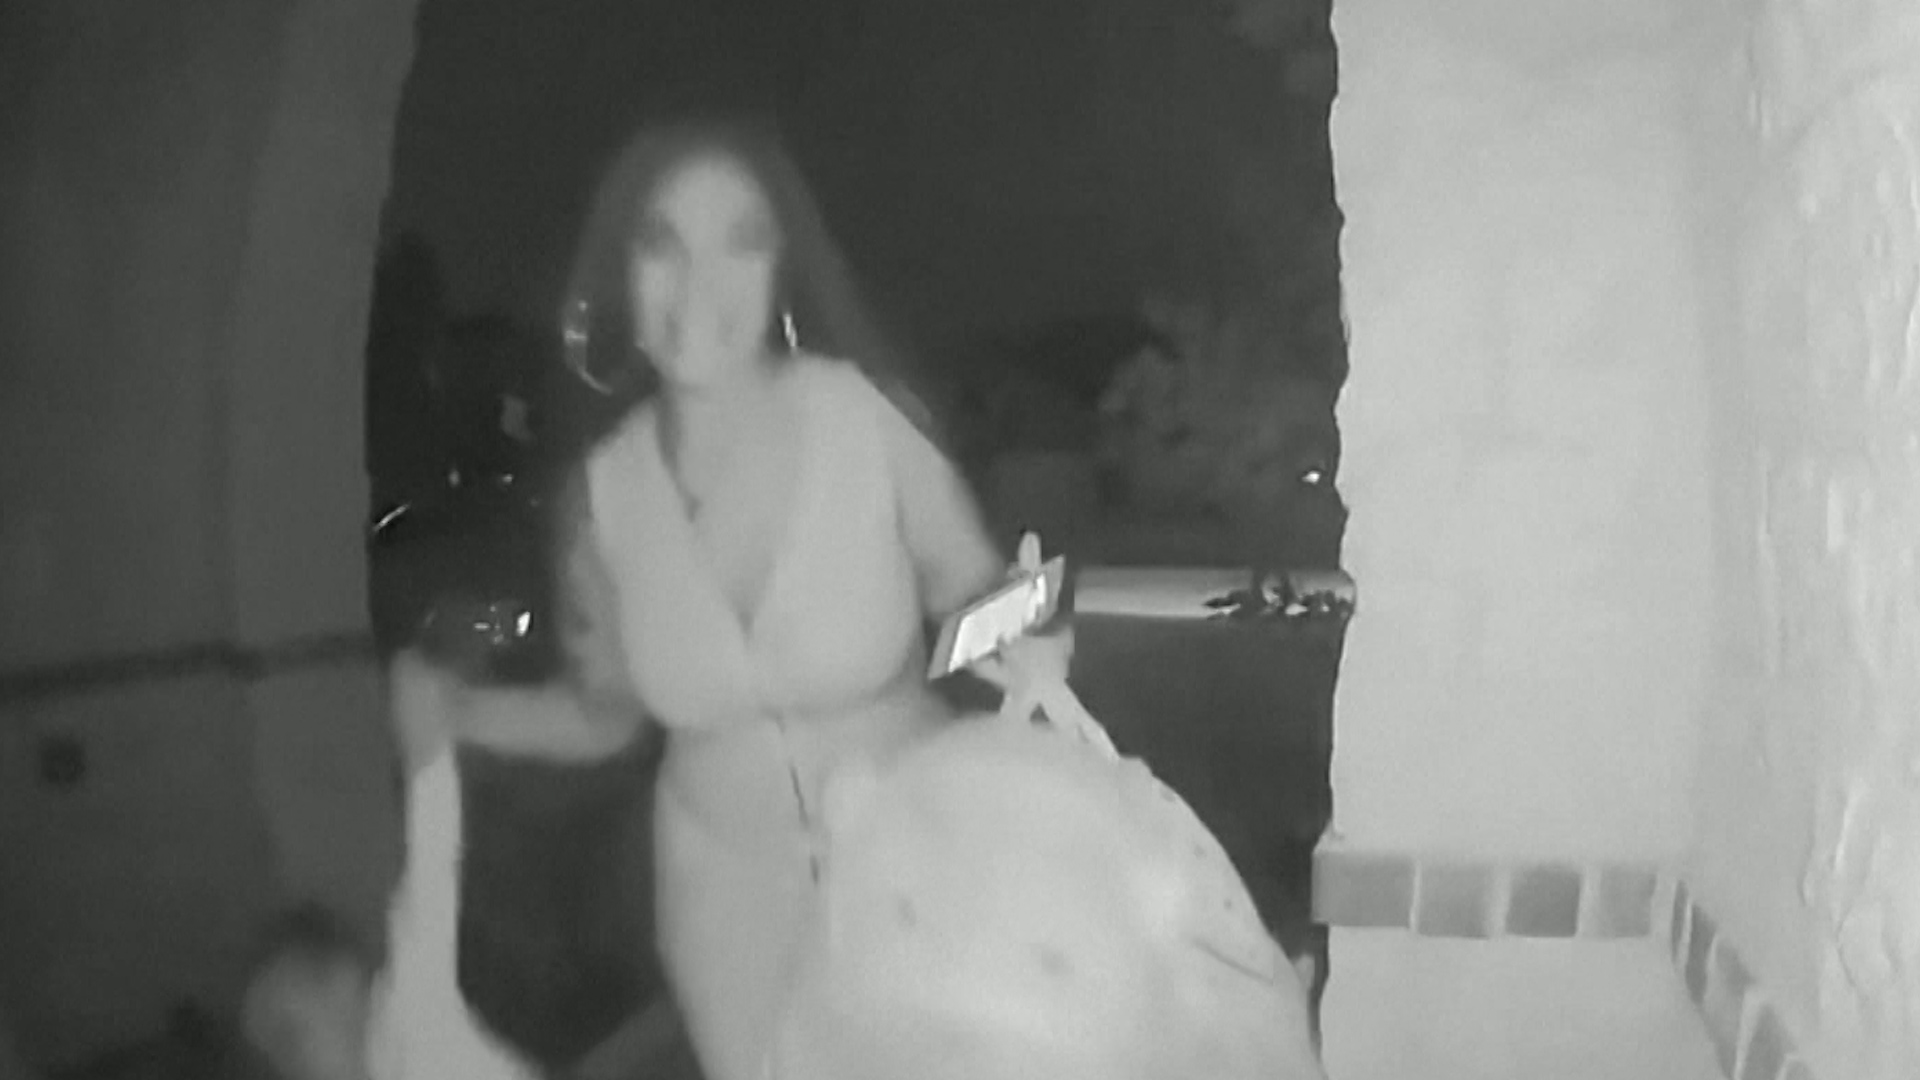 Police identify woman caught on video leaving toddler alone on stranger's doorstep